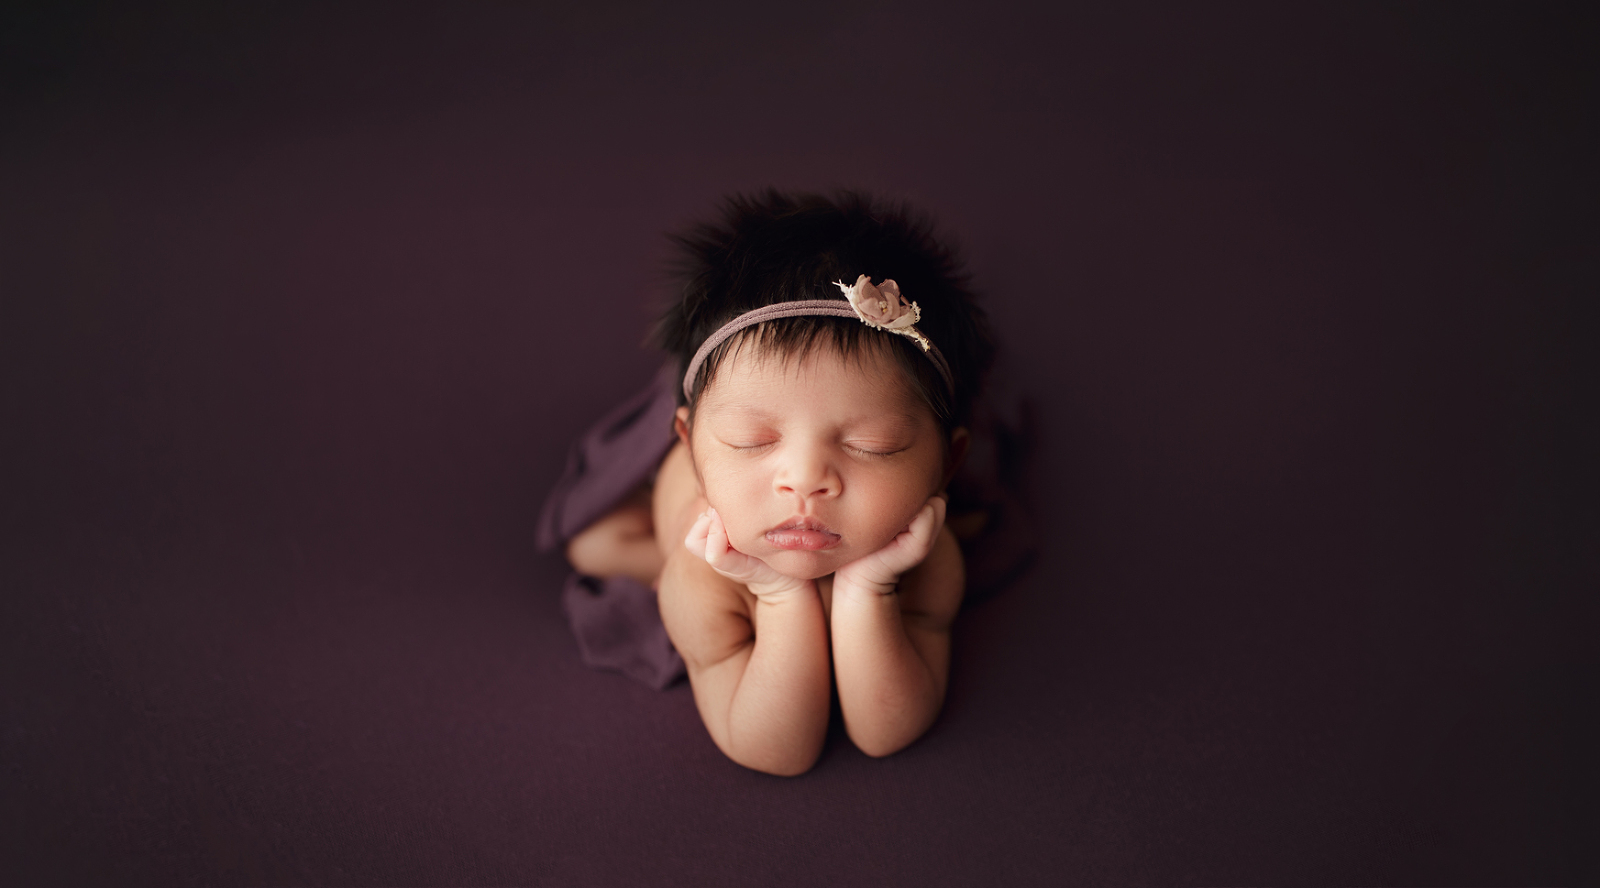 Newborn girl with lots of hair wearing a purple headband resting her chin on her hands